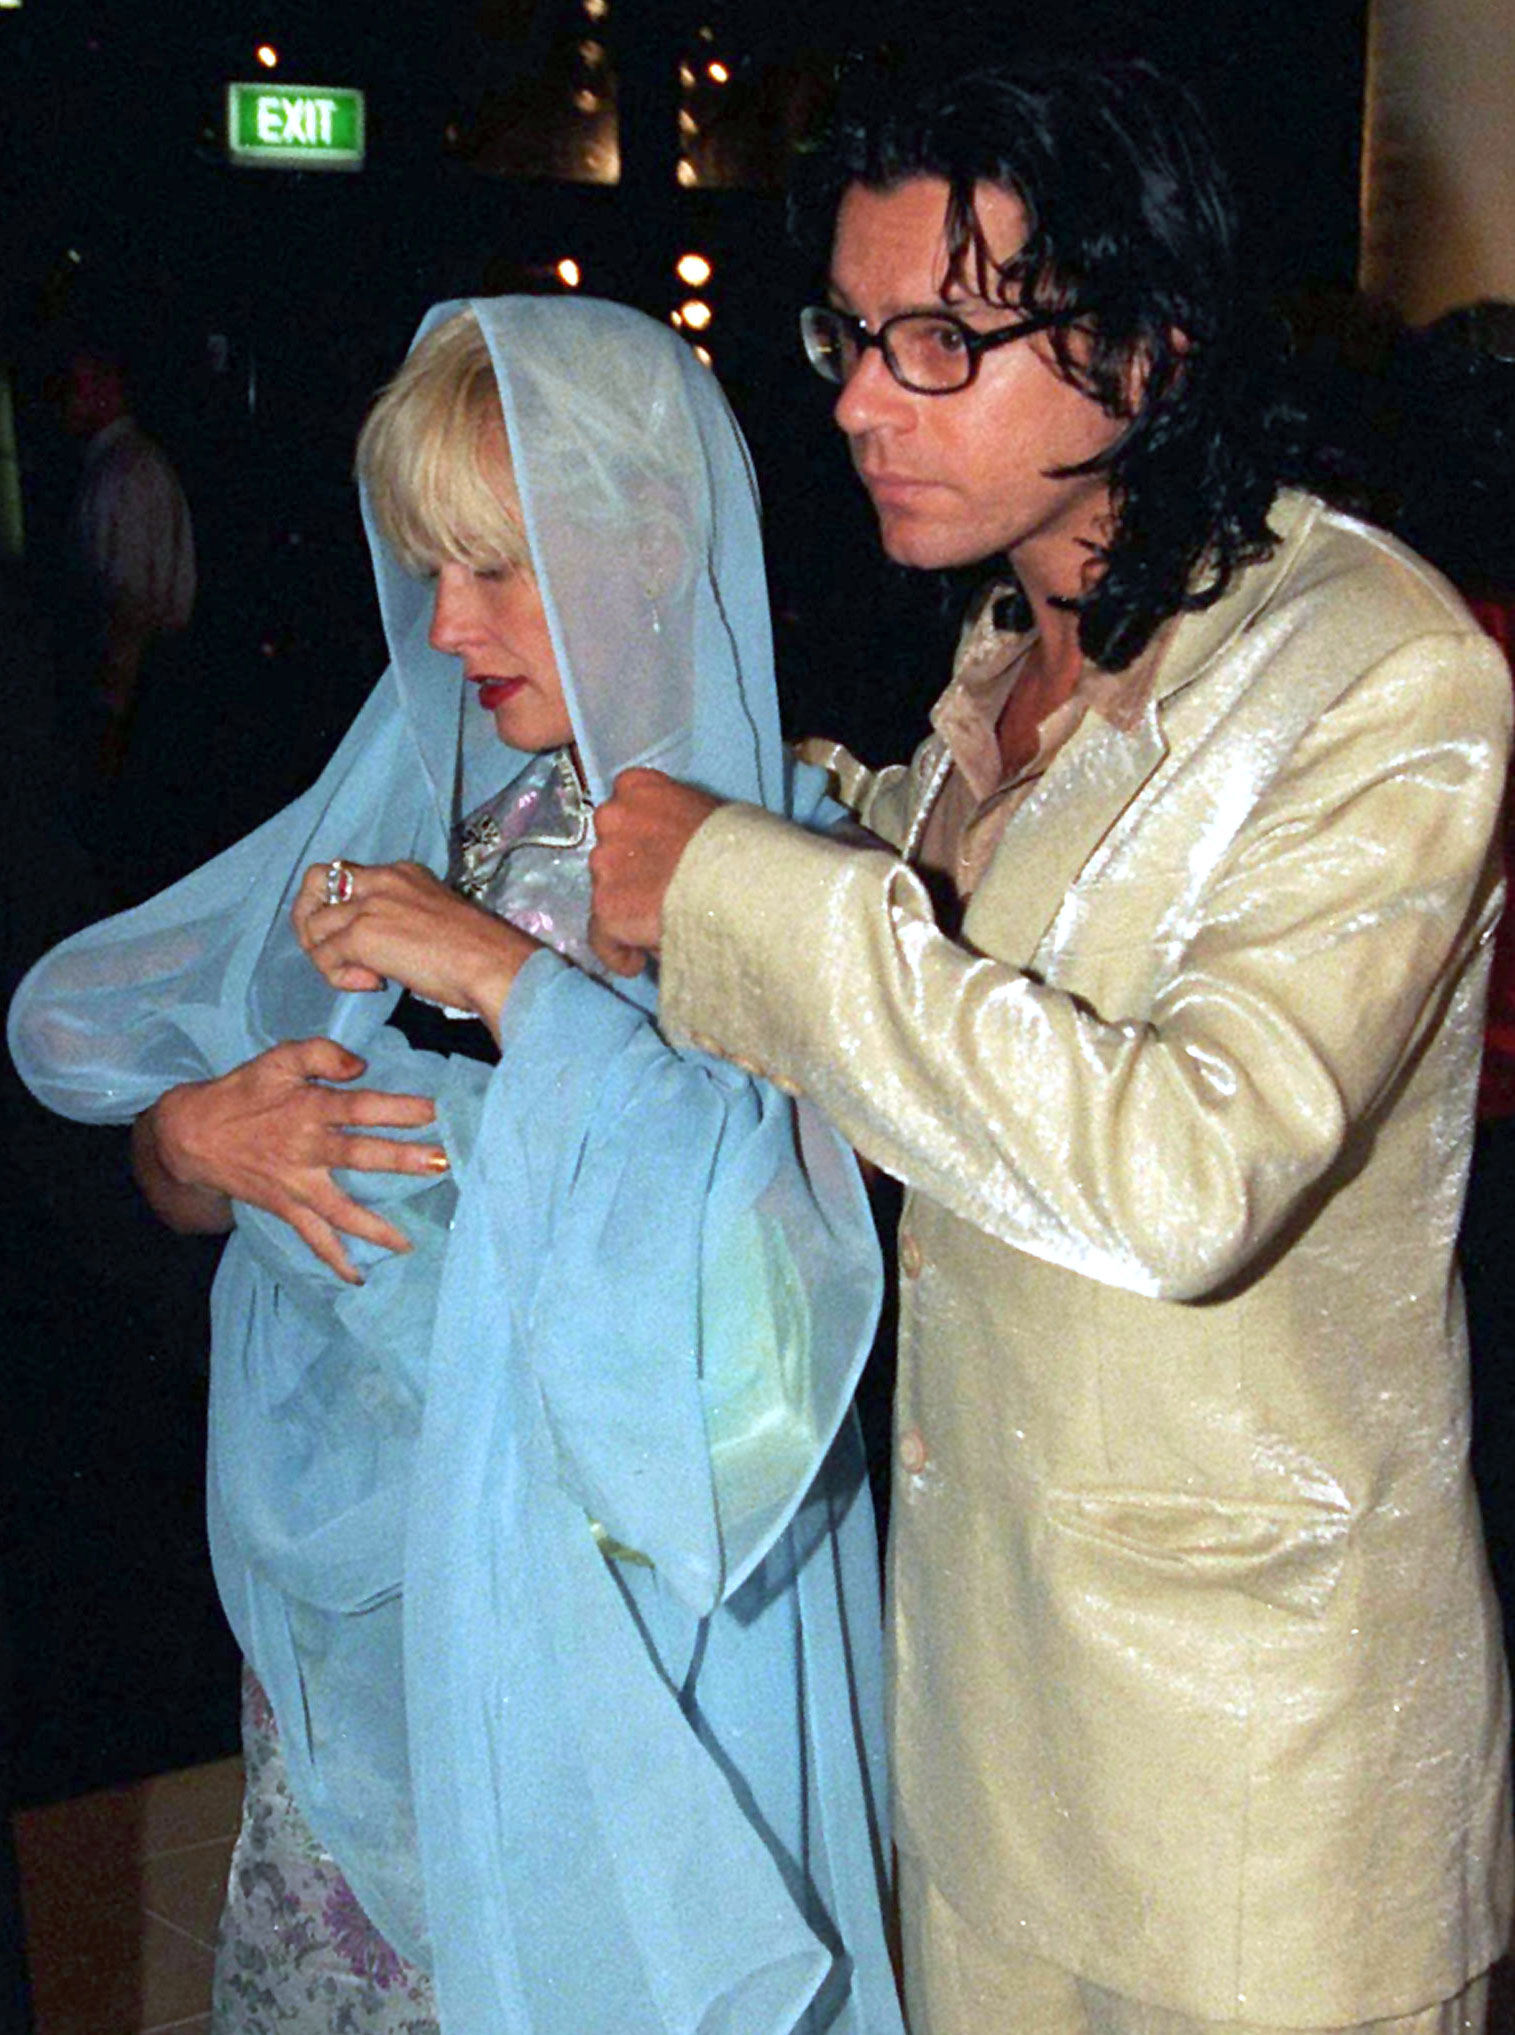 25SEP96 FILE PHOTO - Australian rock star Michael Hutchence (R), pictured with Paula Yates, who craddles their two-month-old baby Heavenly Hiraani in her shawl on the couples arrival at the opening of Sydney's new IMAX theatre . Yates' former husband Bob-Geldof is believed to have obtained a temporary High Court custody order for his three daughters after a substance believed to have been opium was found during a police raid on their London home. **AUSTRALIA OUT** - PBEAHUMXECA